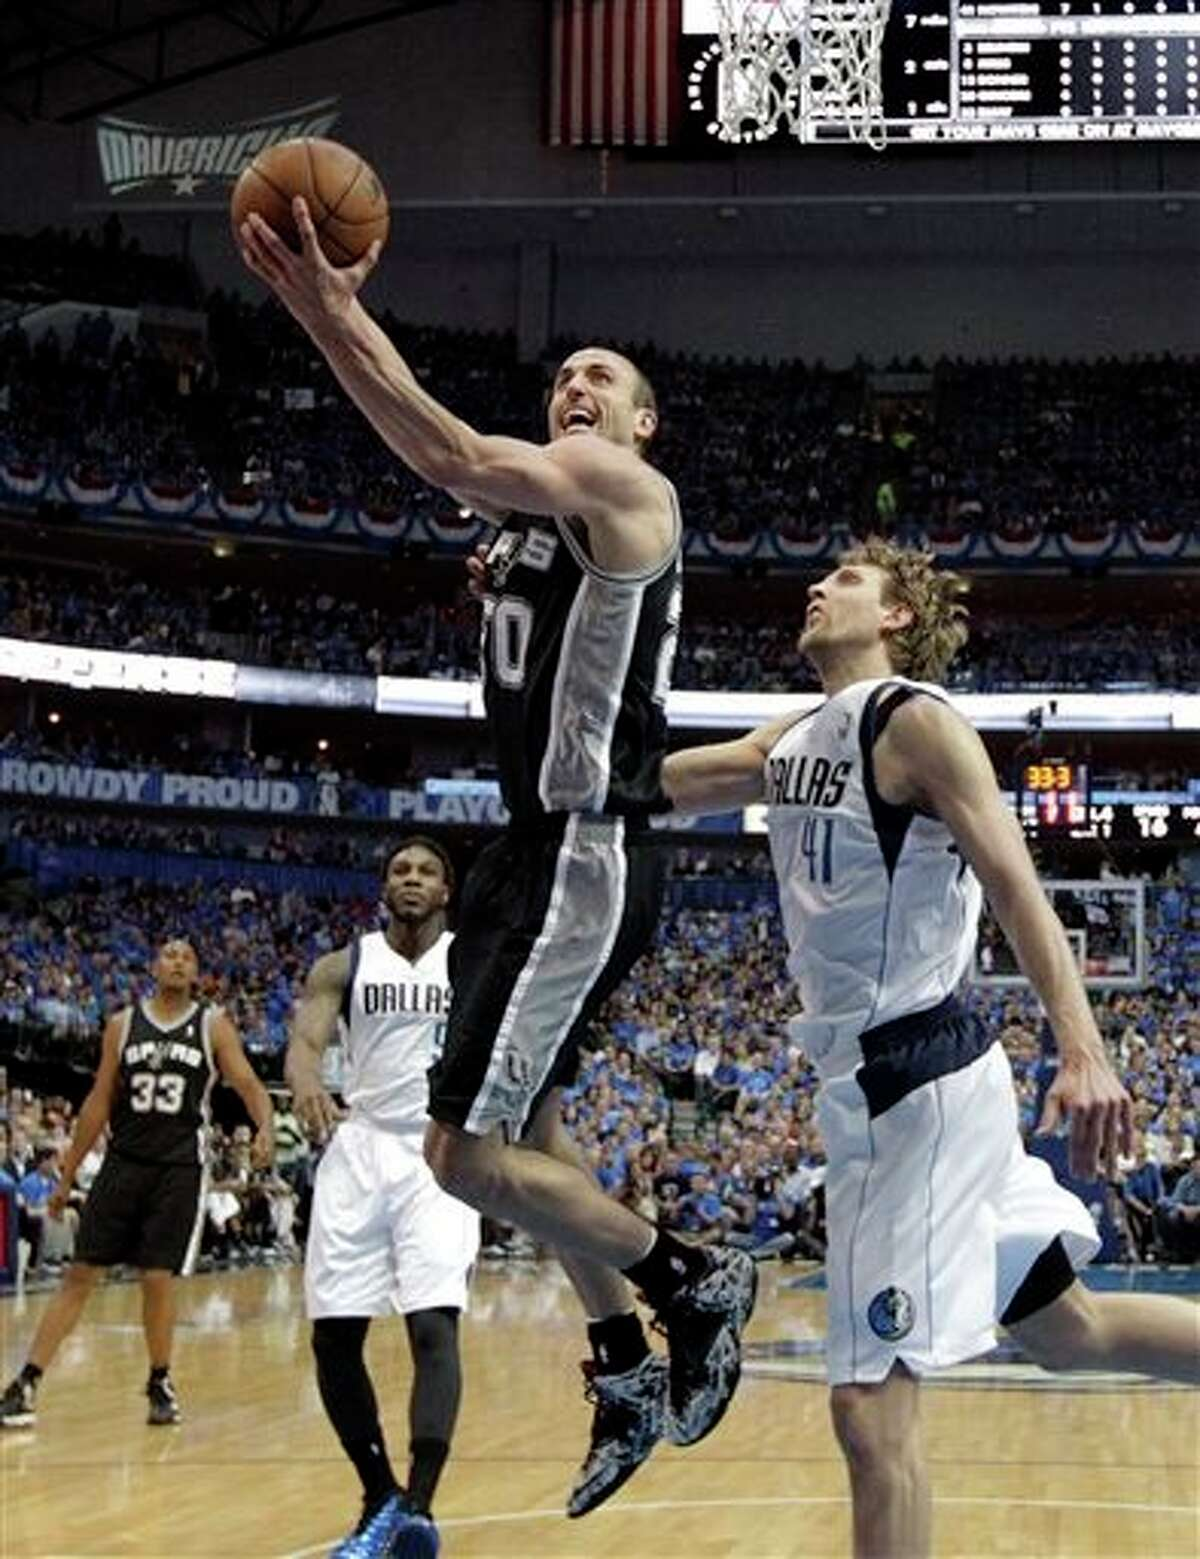 San Antonio Spurs' Manu Ginobili (20) goes up for a shot as Dallas Mavericks' Dirk Nowitzki (41) defends in the first half of Game 4 of an NBA basketball first-round playoff series, Monday, April 28, 2014, in Dallas. (AP Photo/Tony Gutierrez)